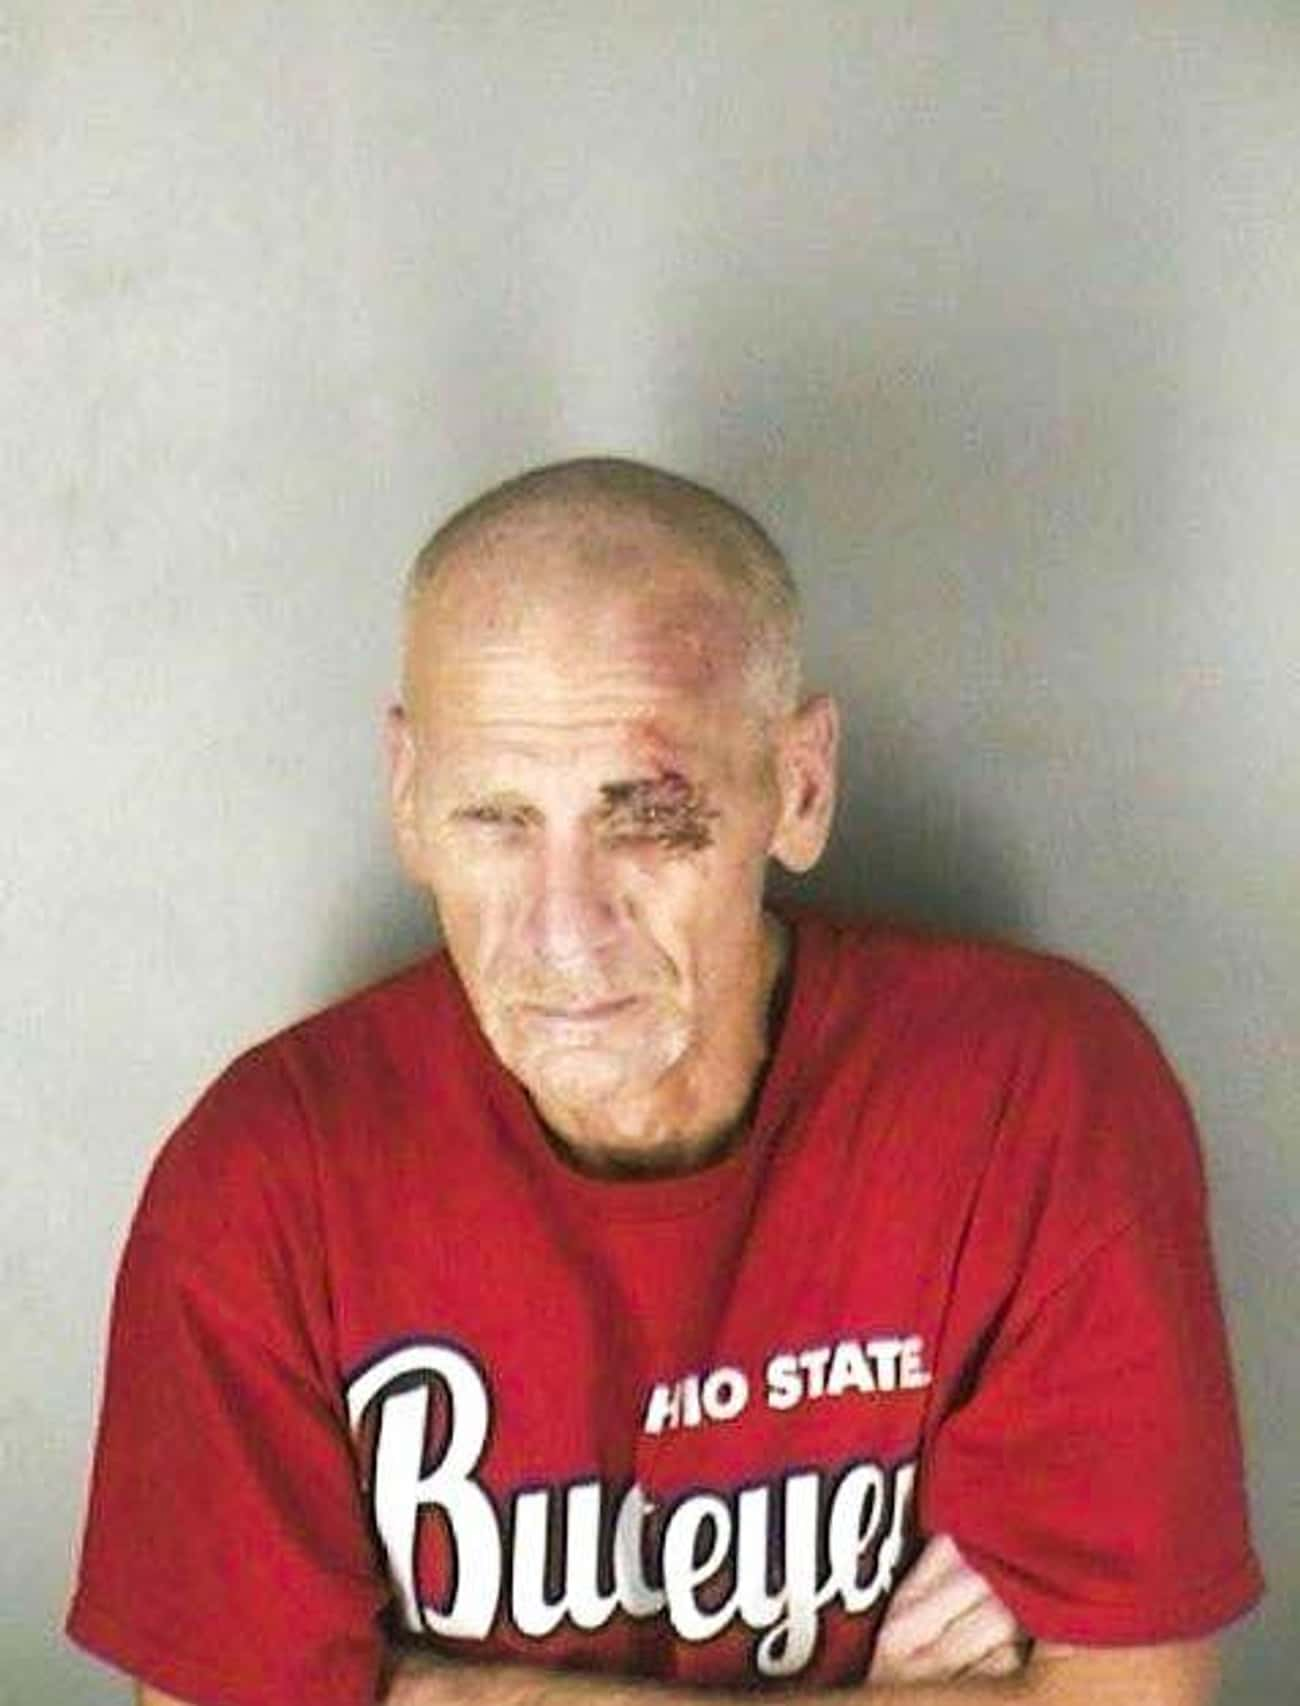 Buckeye Black Eye is listed (or ranked) 4 on the list The Greatest Football Fan Mugshots Ever